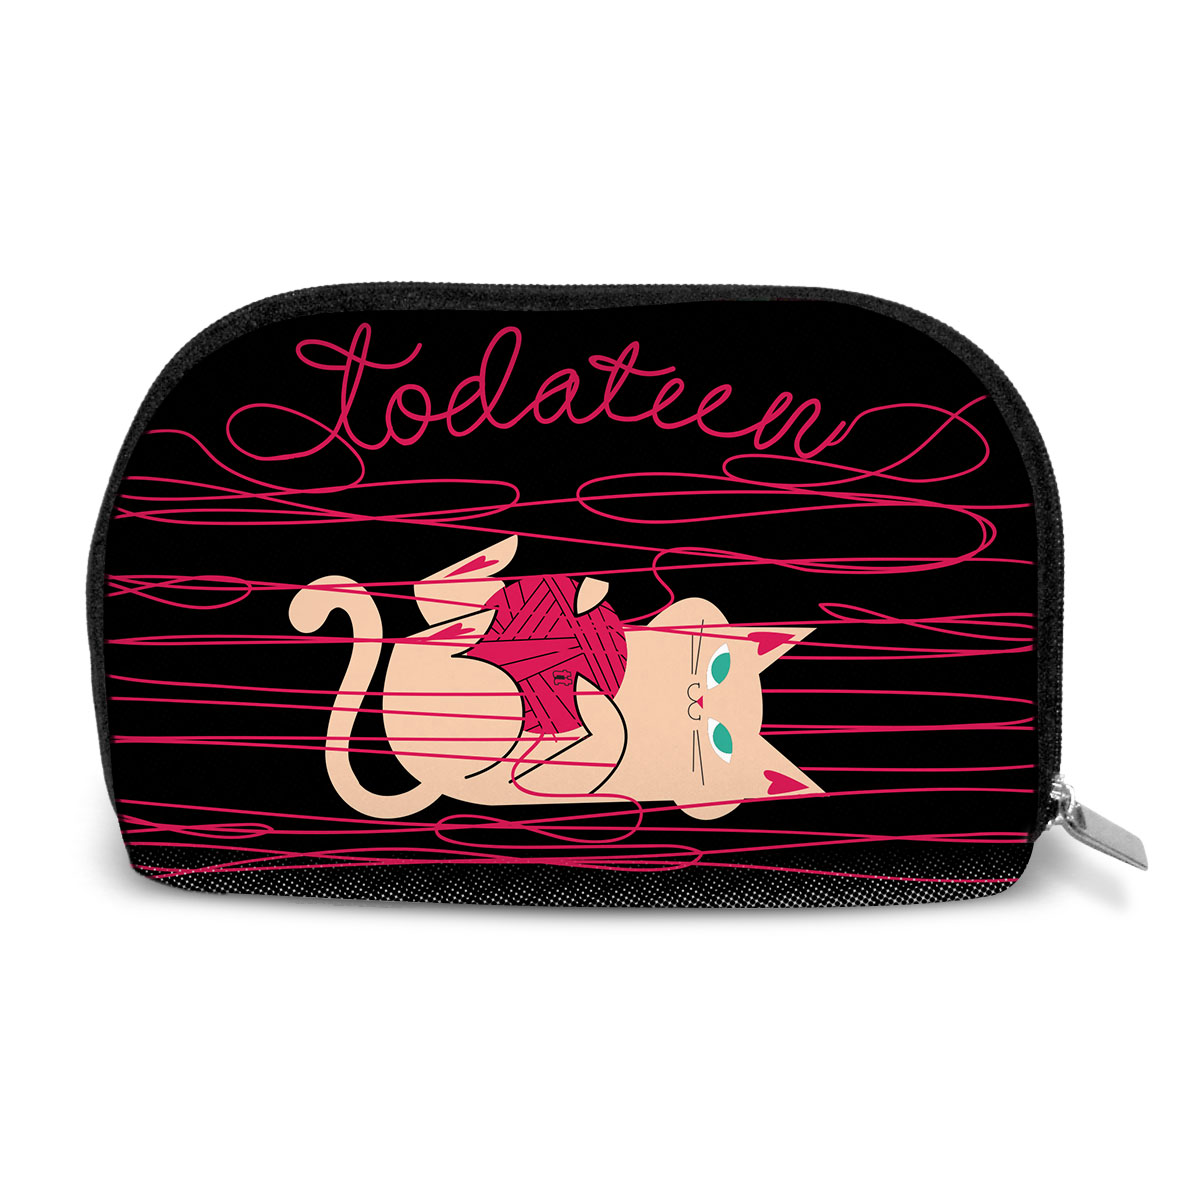 Necessaire TodaTeen Cat